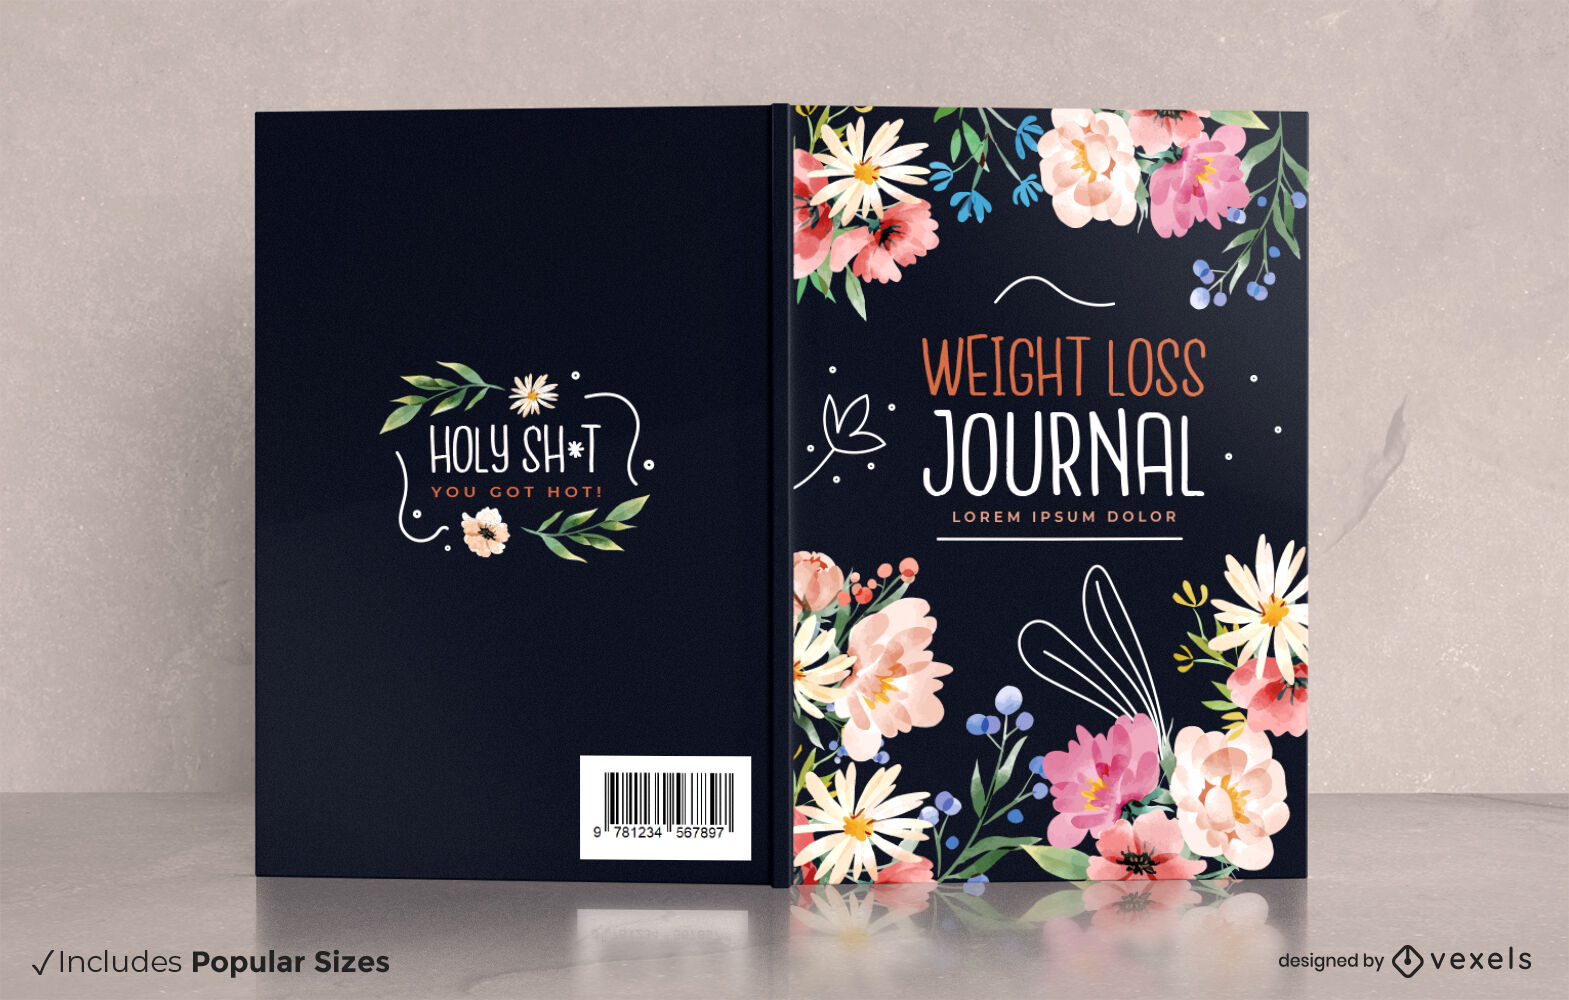 Weight loss floral journal cover design